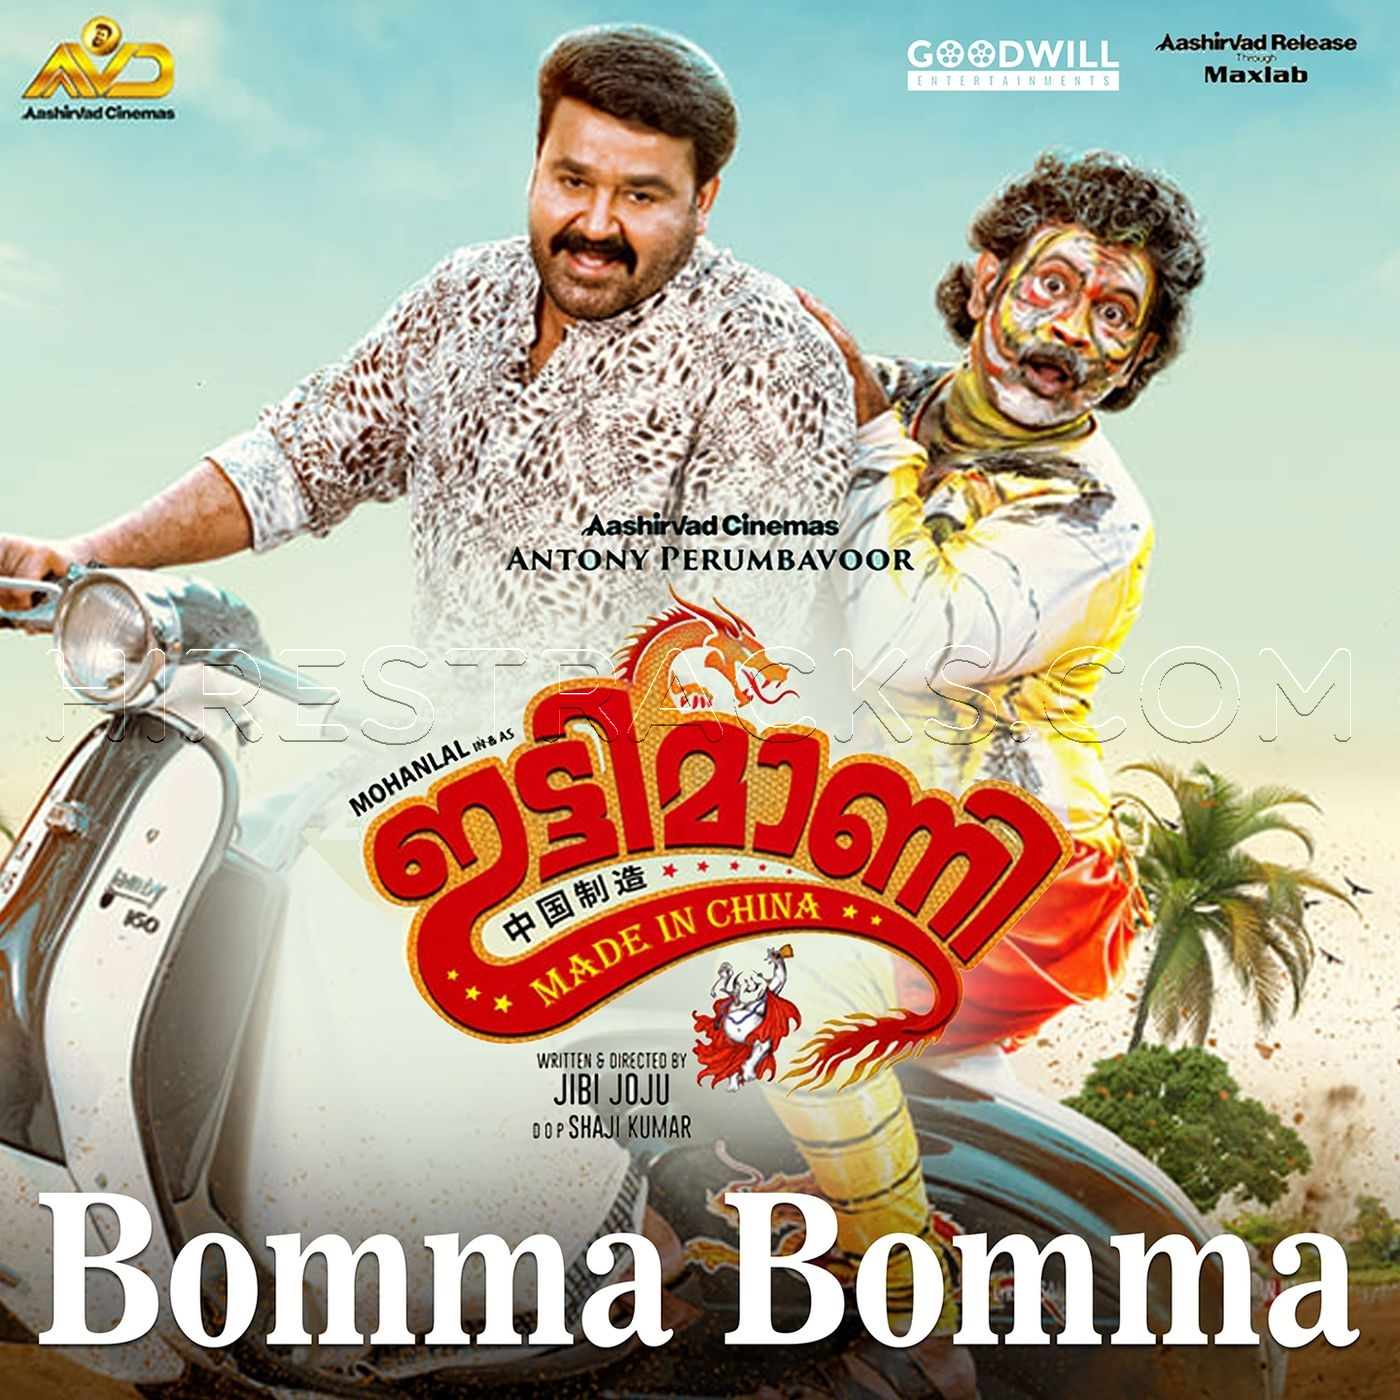 Bomma Bomma (From Ittymaani Made In China) (2019) (4 Musics) (Goodwill Entertainments)